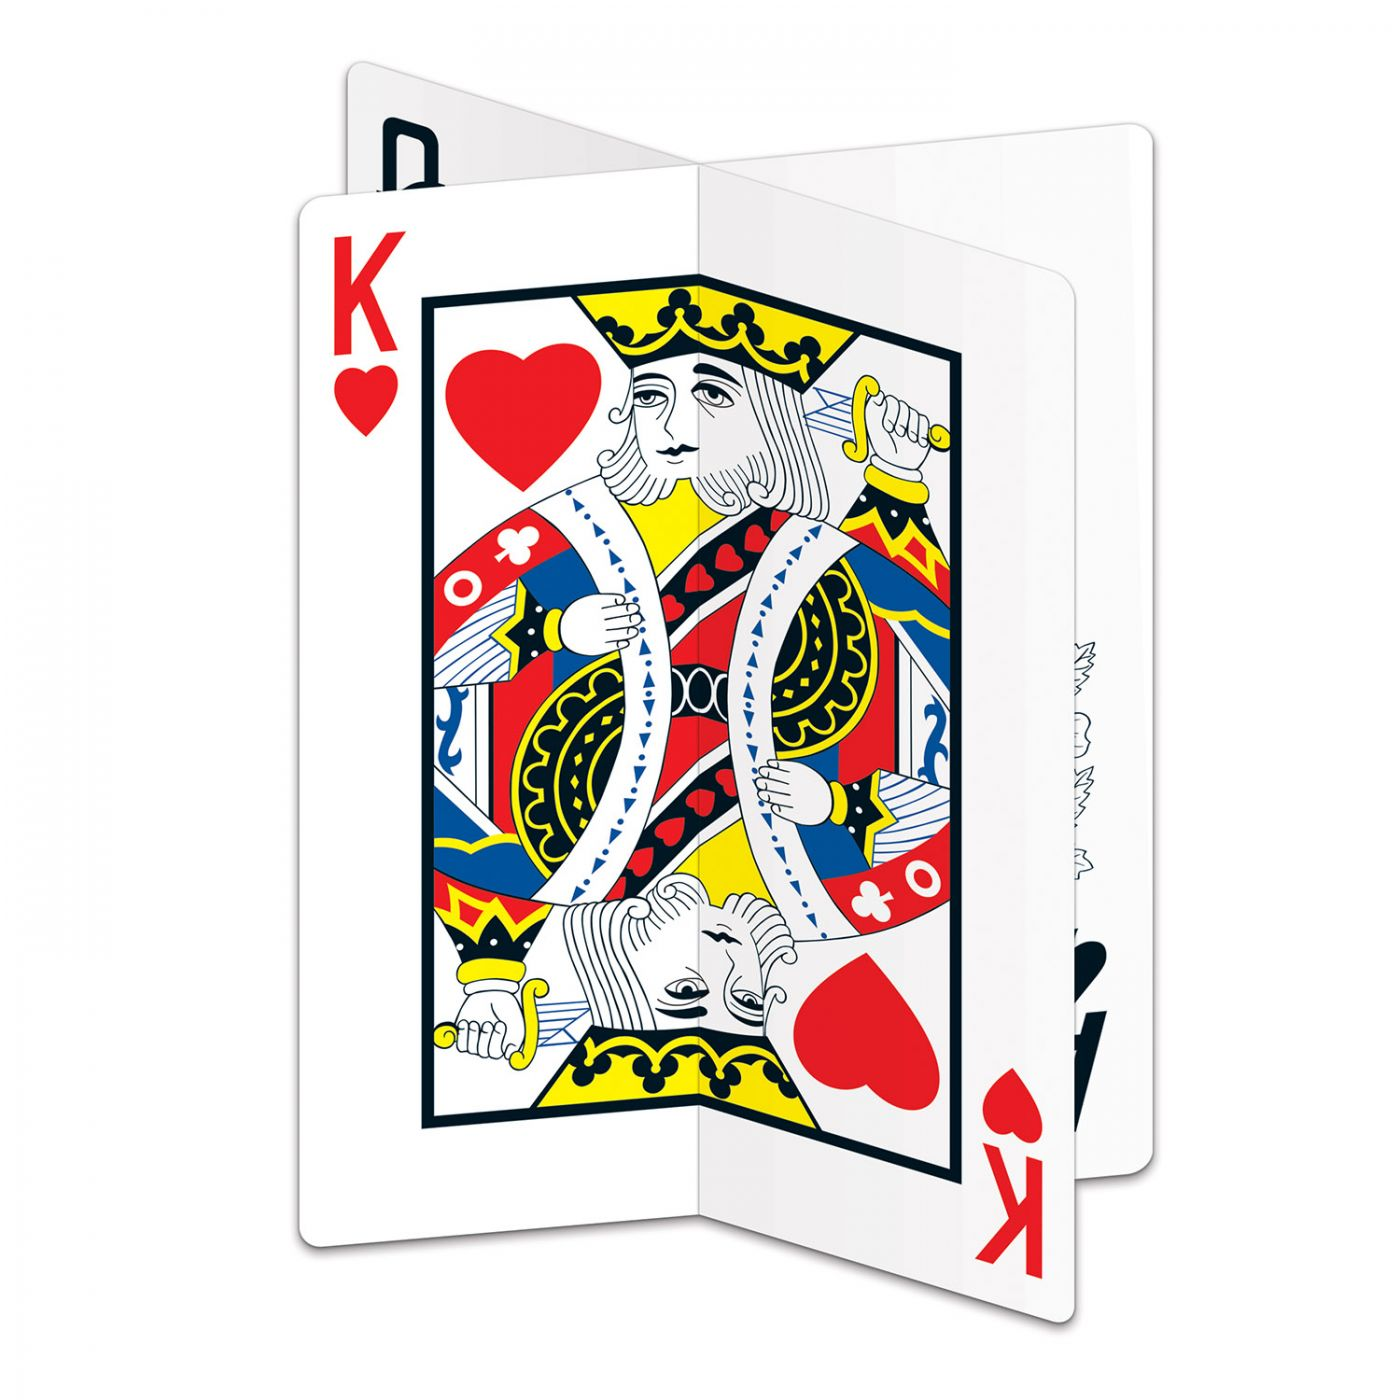 Image of 3-D Playing Card Centerpiece